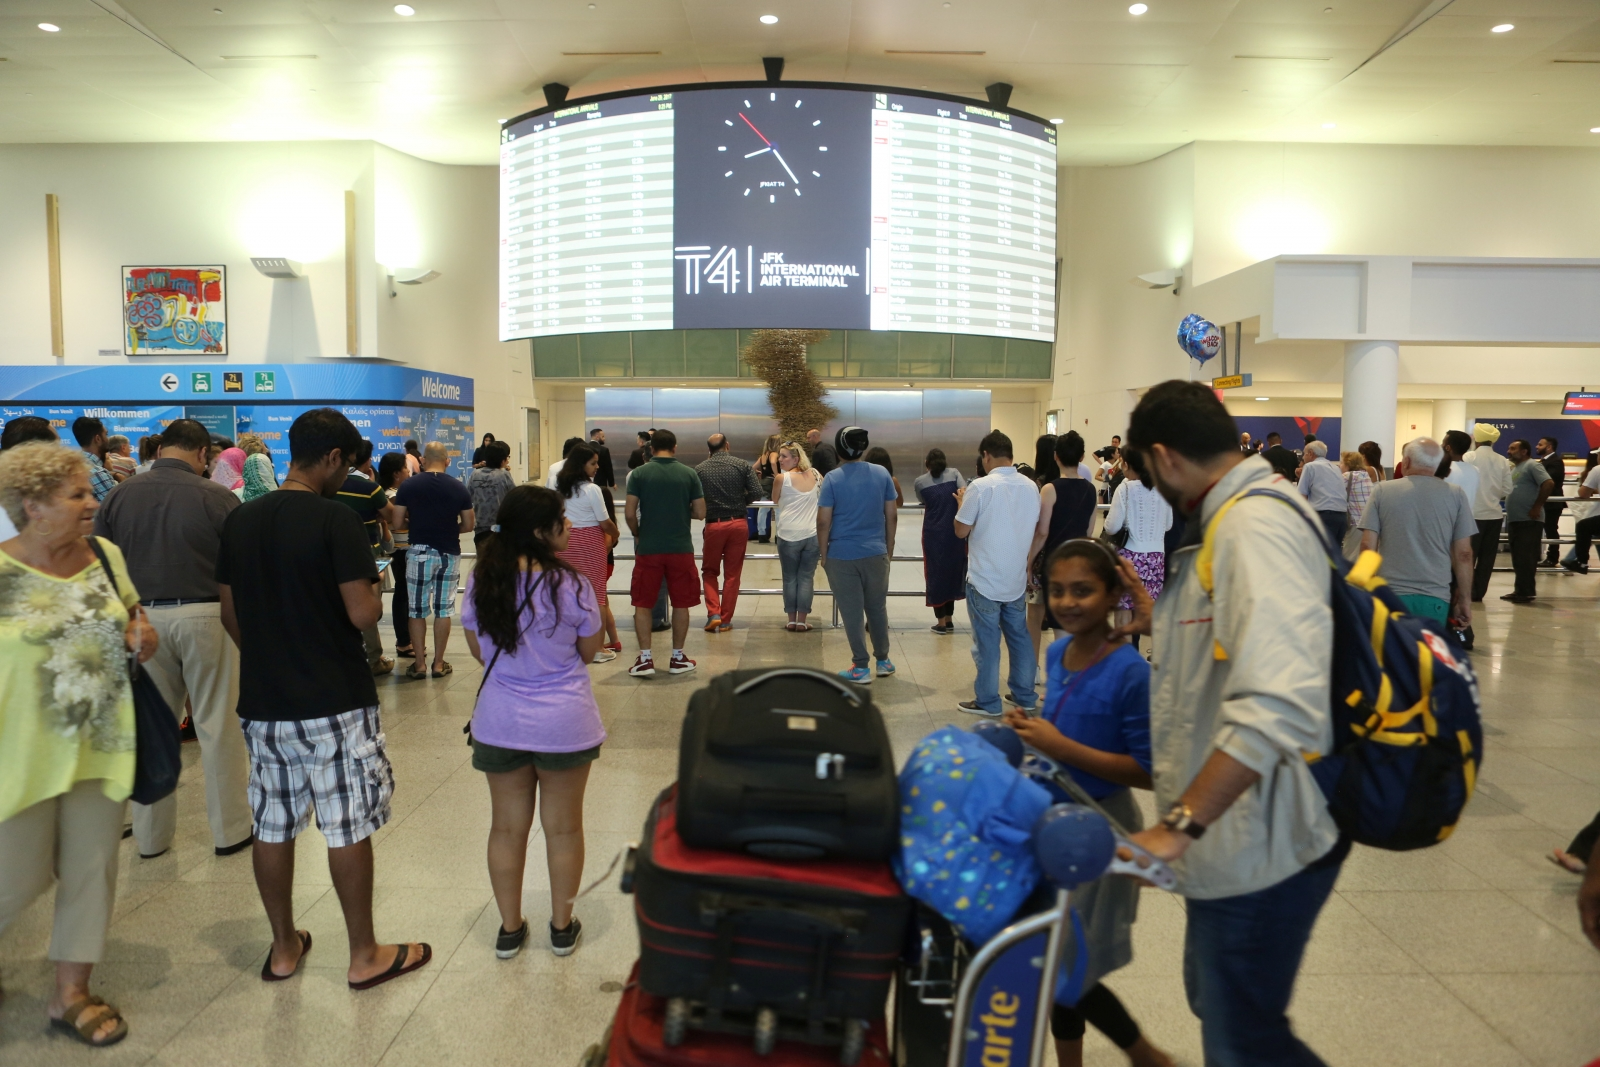 Customs processing outage delays global travel